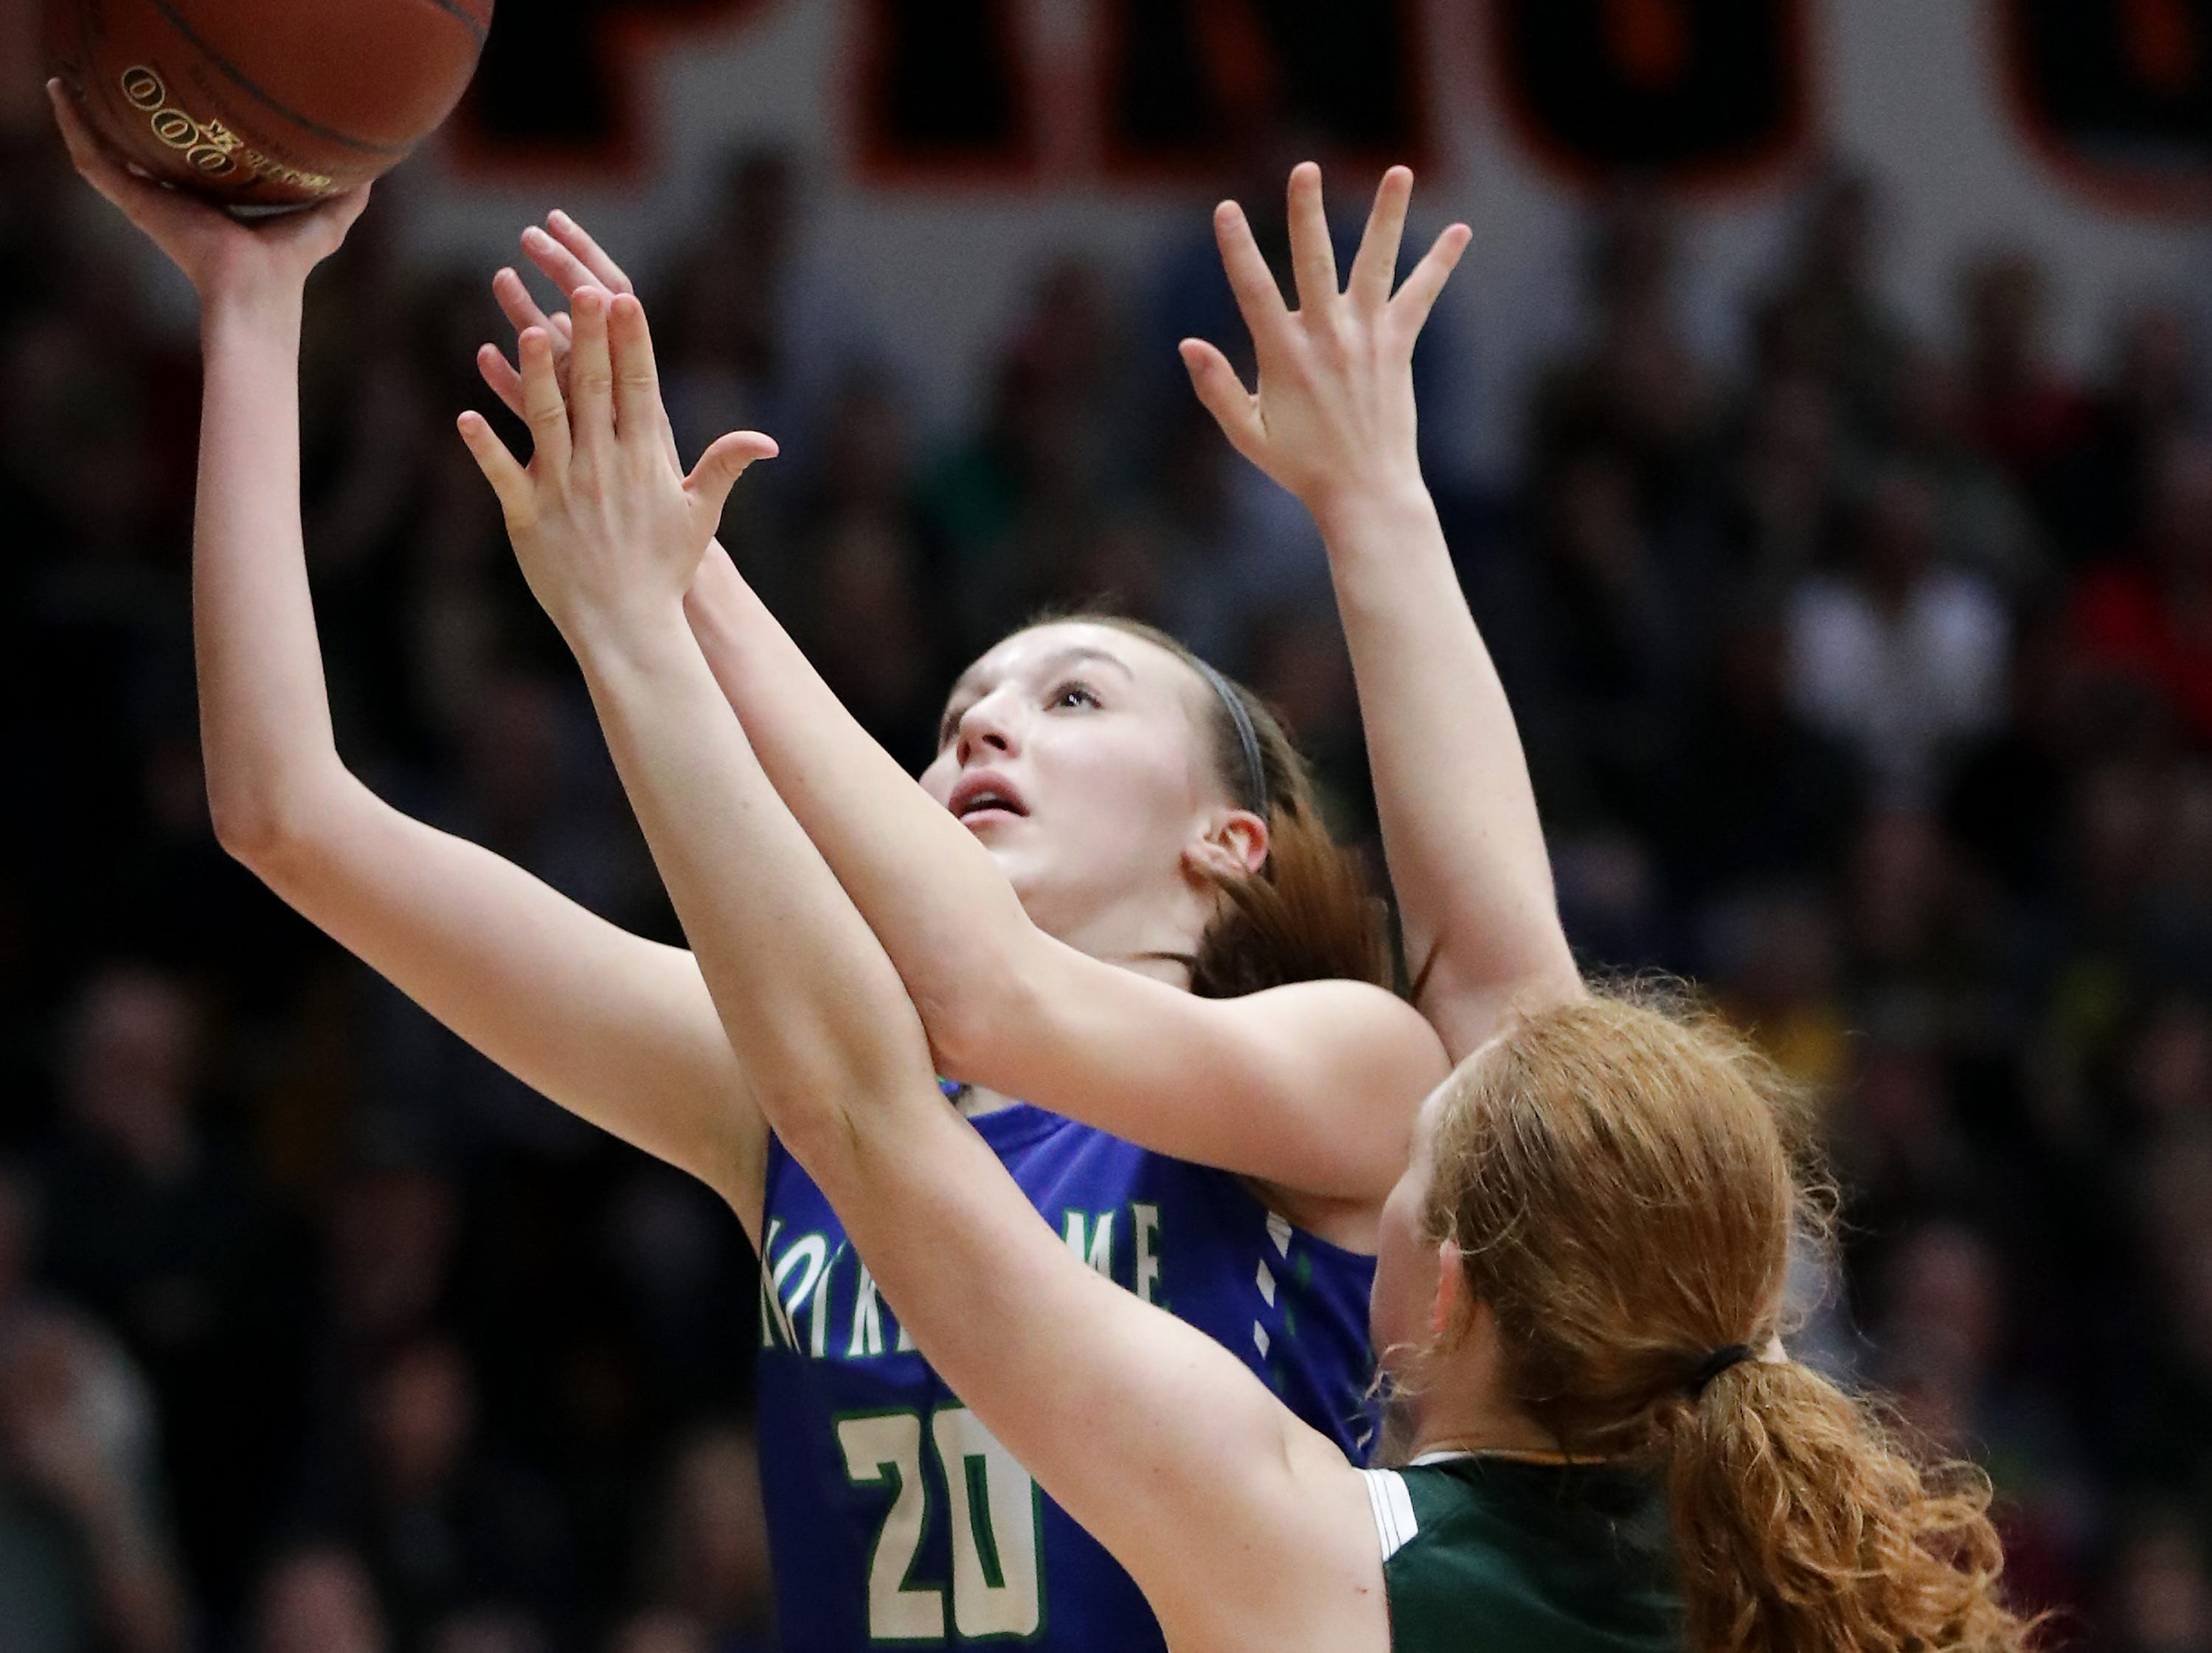 Notre Dame High School's #20 Sammy Opichka against Beaver Dam High School's #1 Natalie Jens during their WIAA Division 2 girls basketball sectional final on Saturday, March 2, 2019, at Kaukauna High School in Kaukauna, Wis. Beaver Dam defeated Notre Dame 68 to 40.